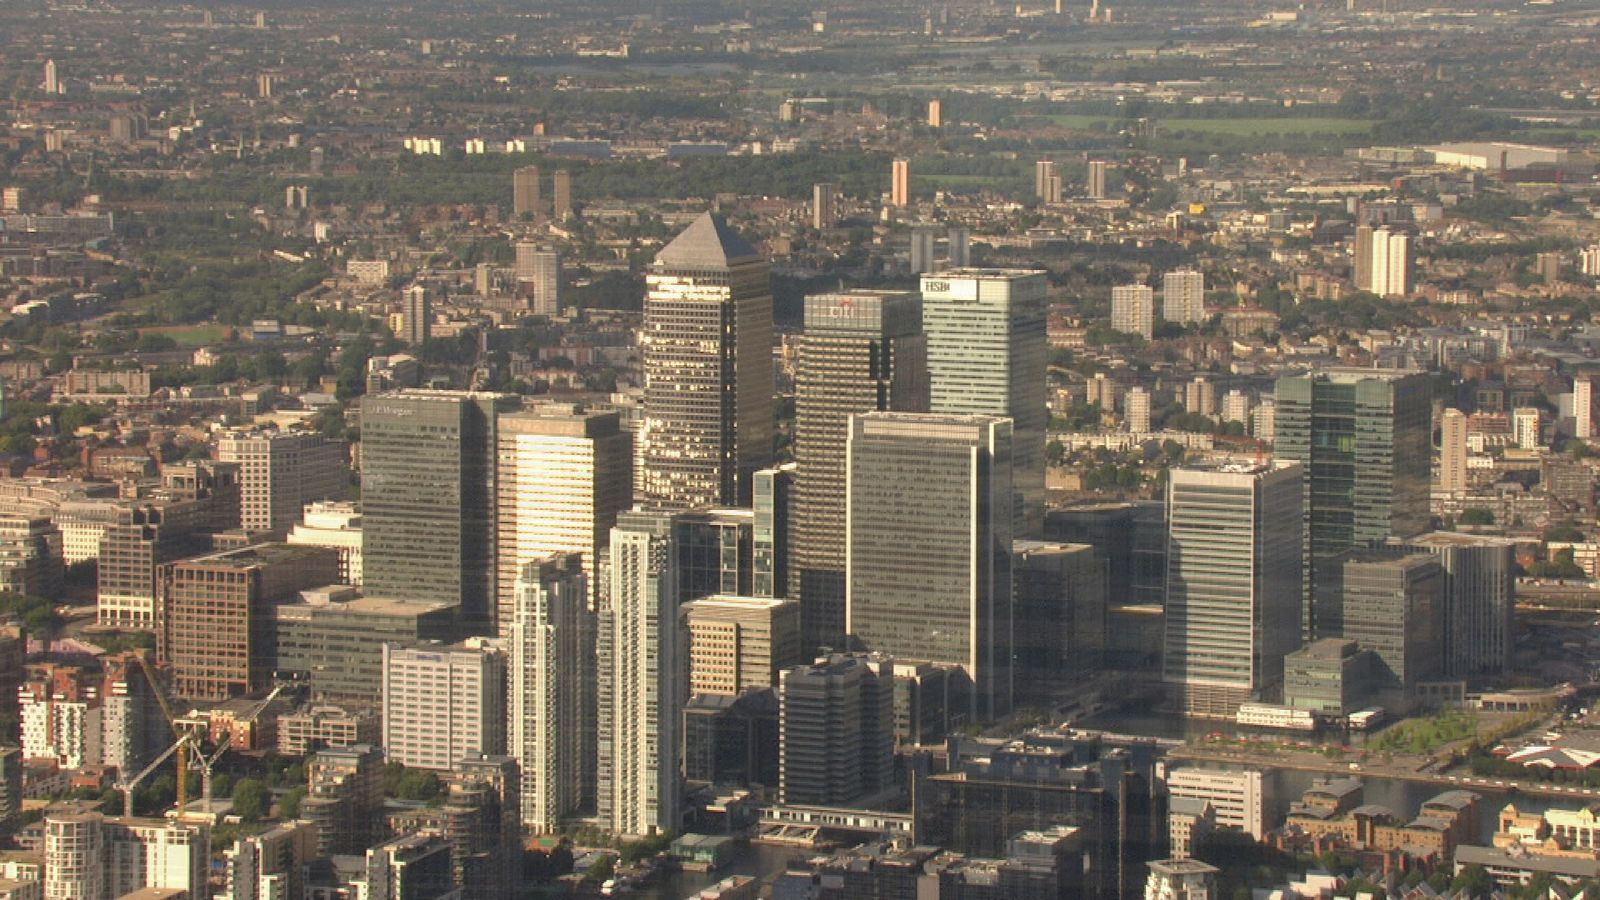 Canary Wharf is home to many world banks